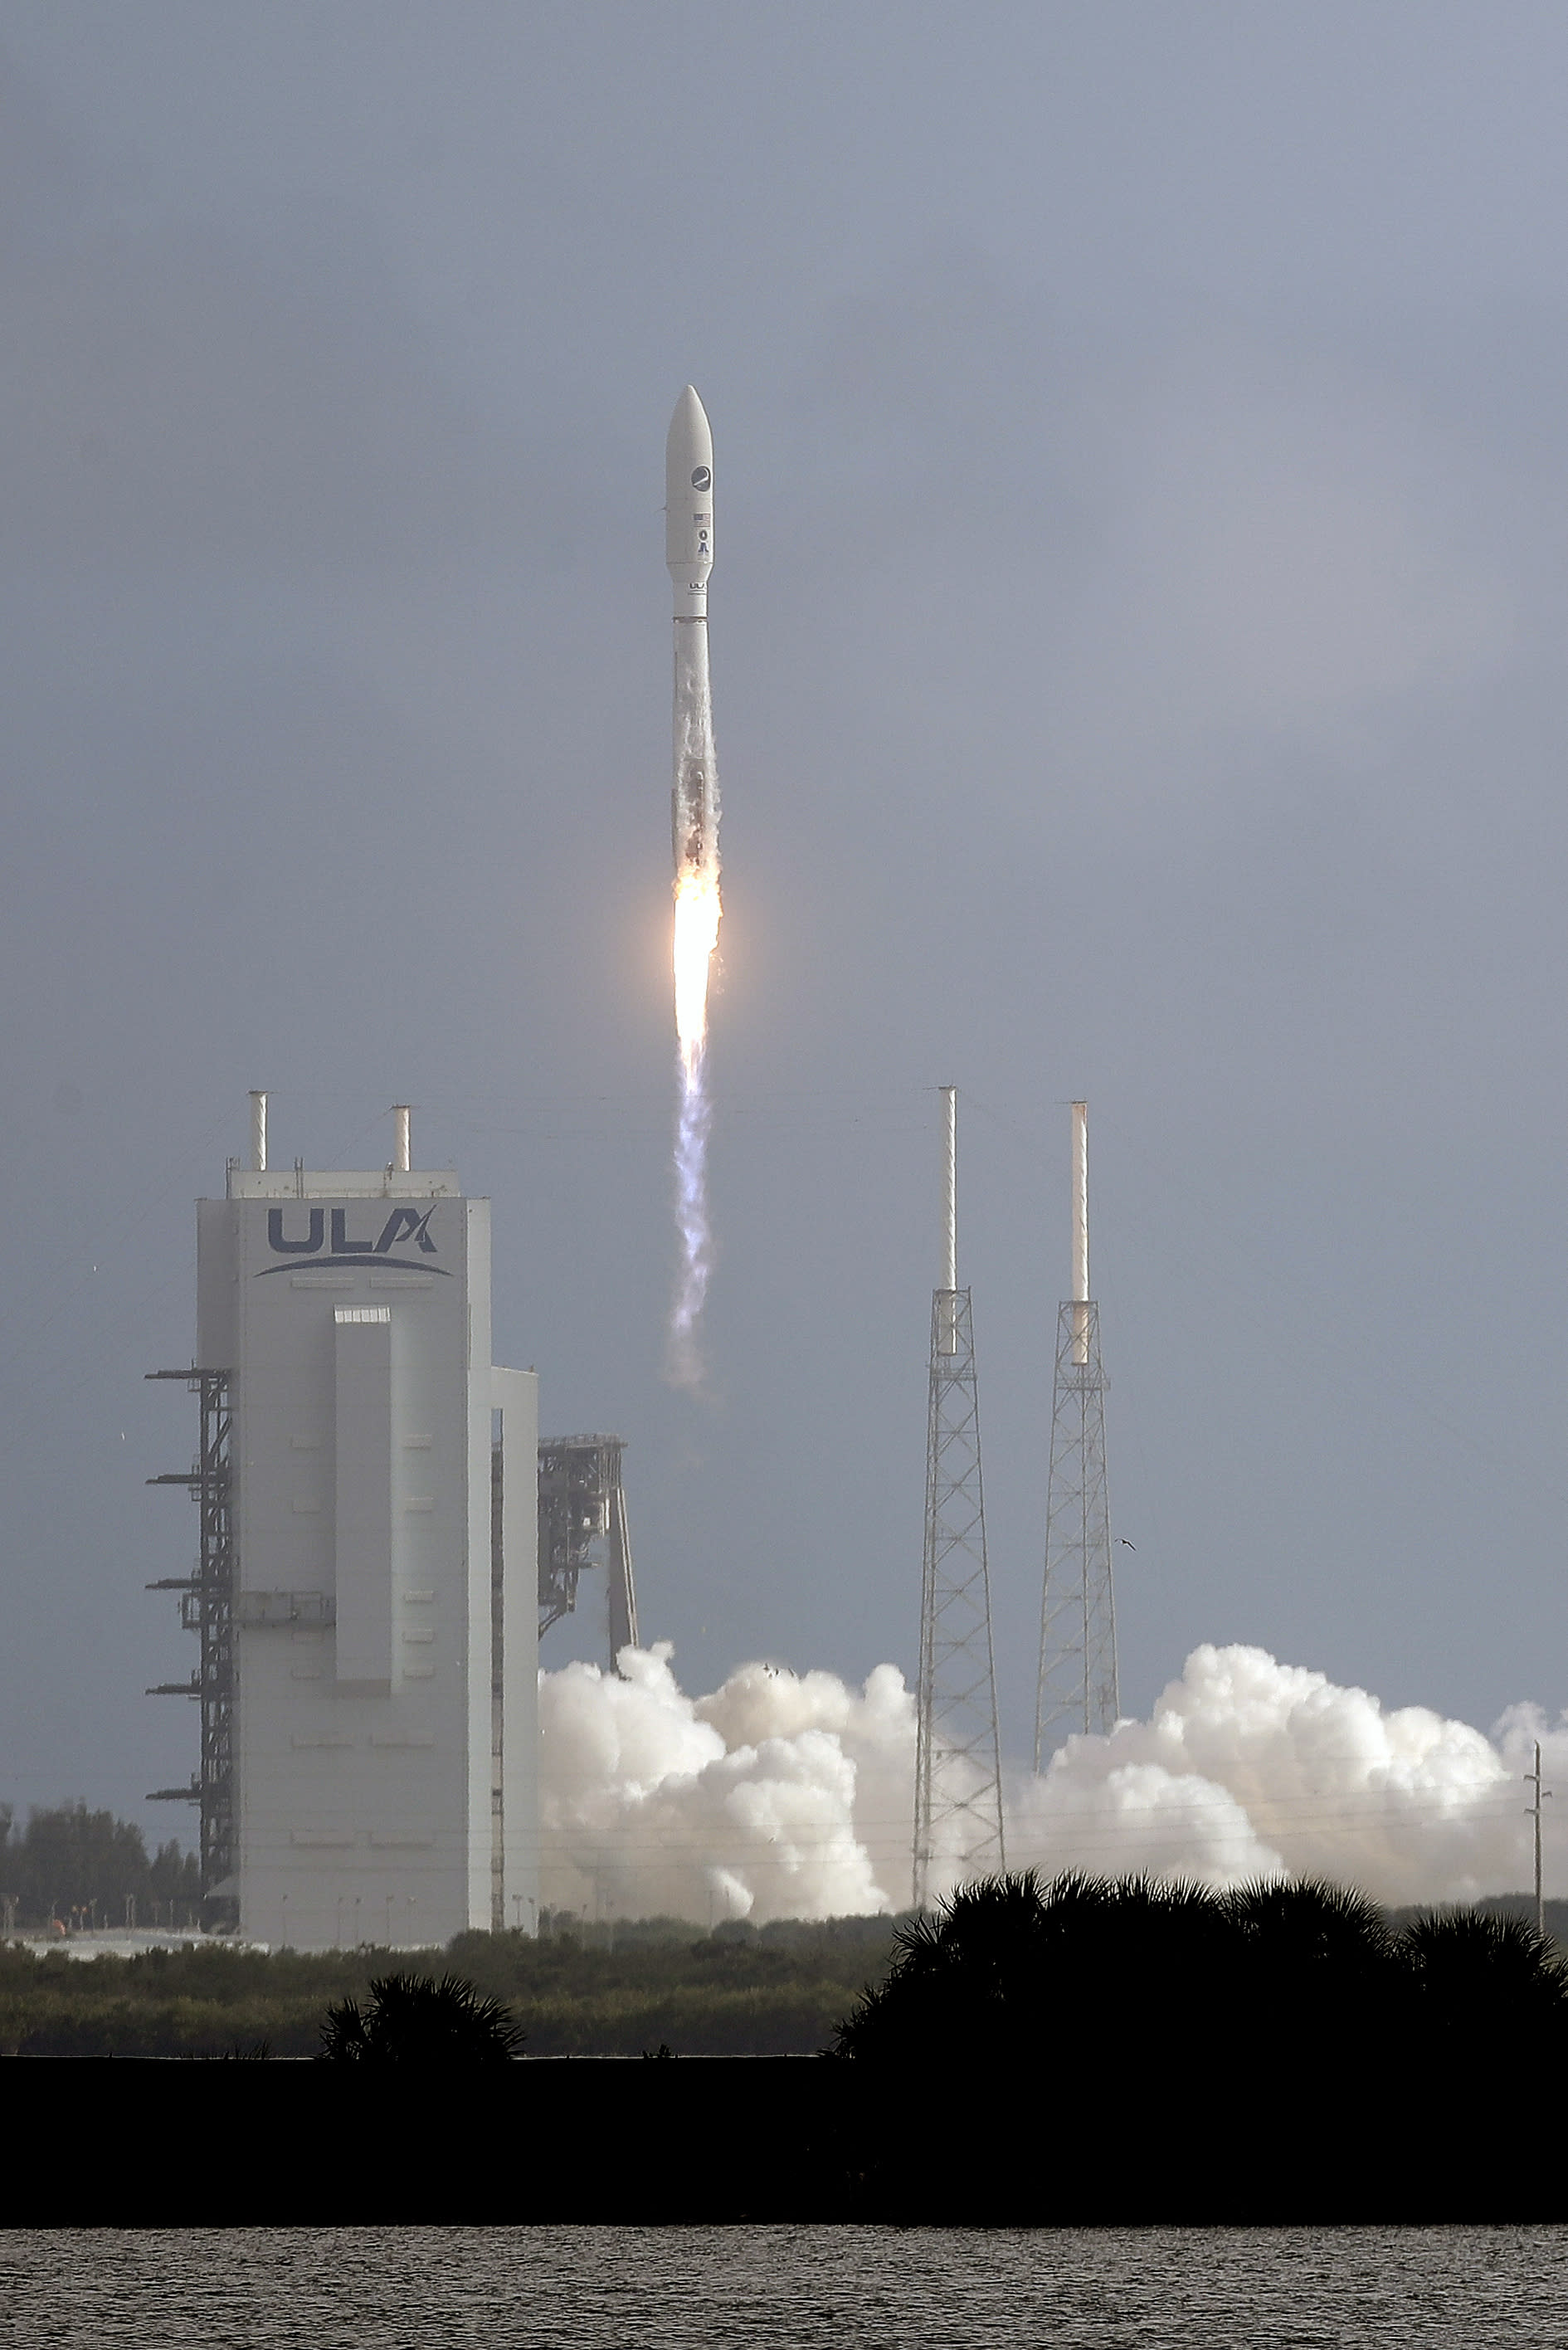 A United Launch Alliance Atlas V rocket stands lifts off from Launch Complex 41 at the Cape Canaveral Air Force Station, Sunday, May 17, 2020, in Cape Canaveral, Fla. The mission's primary payload is the X-37B spaceplane. (AP Photo/John Raoux)